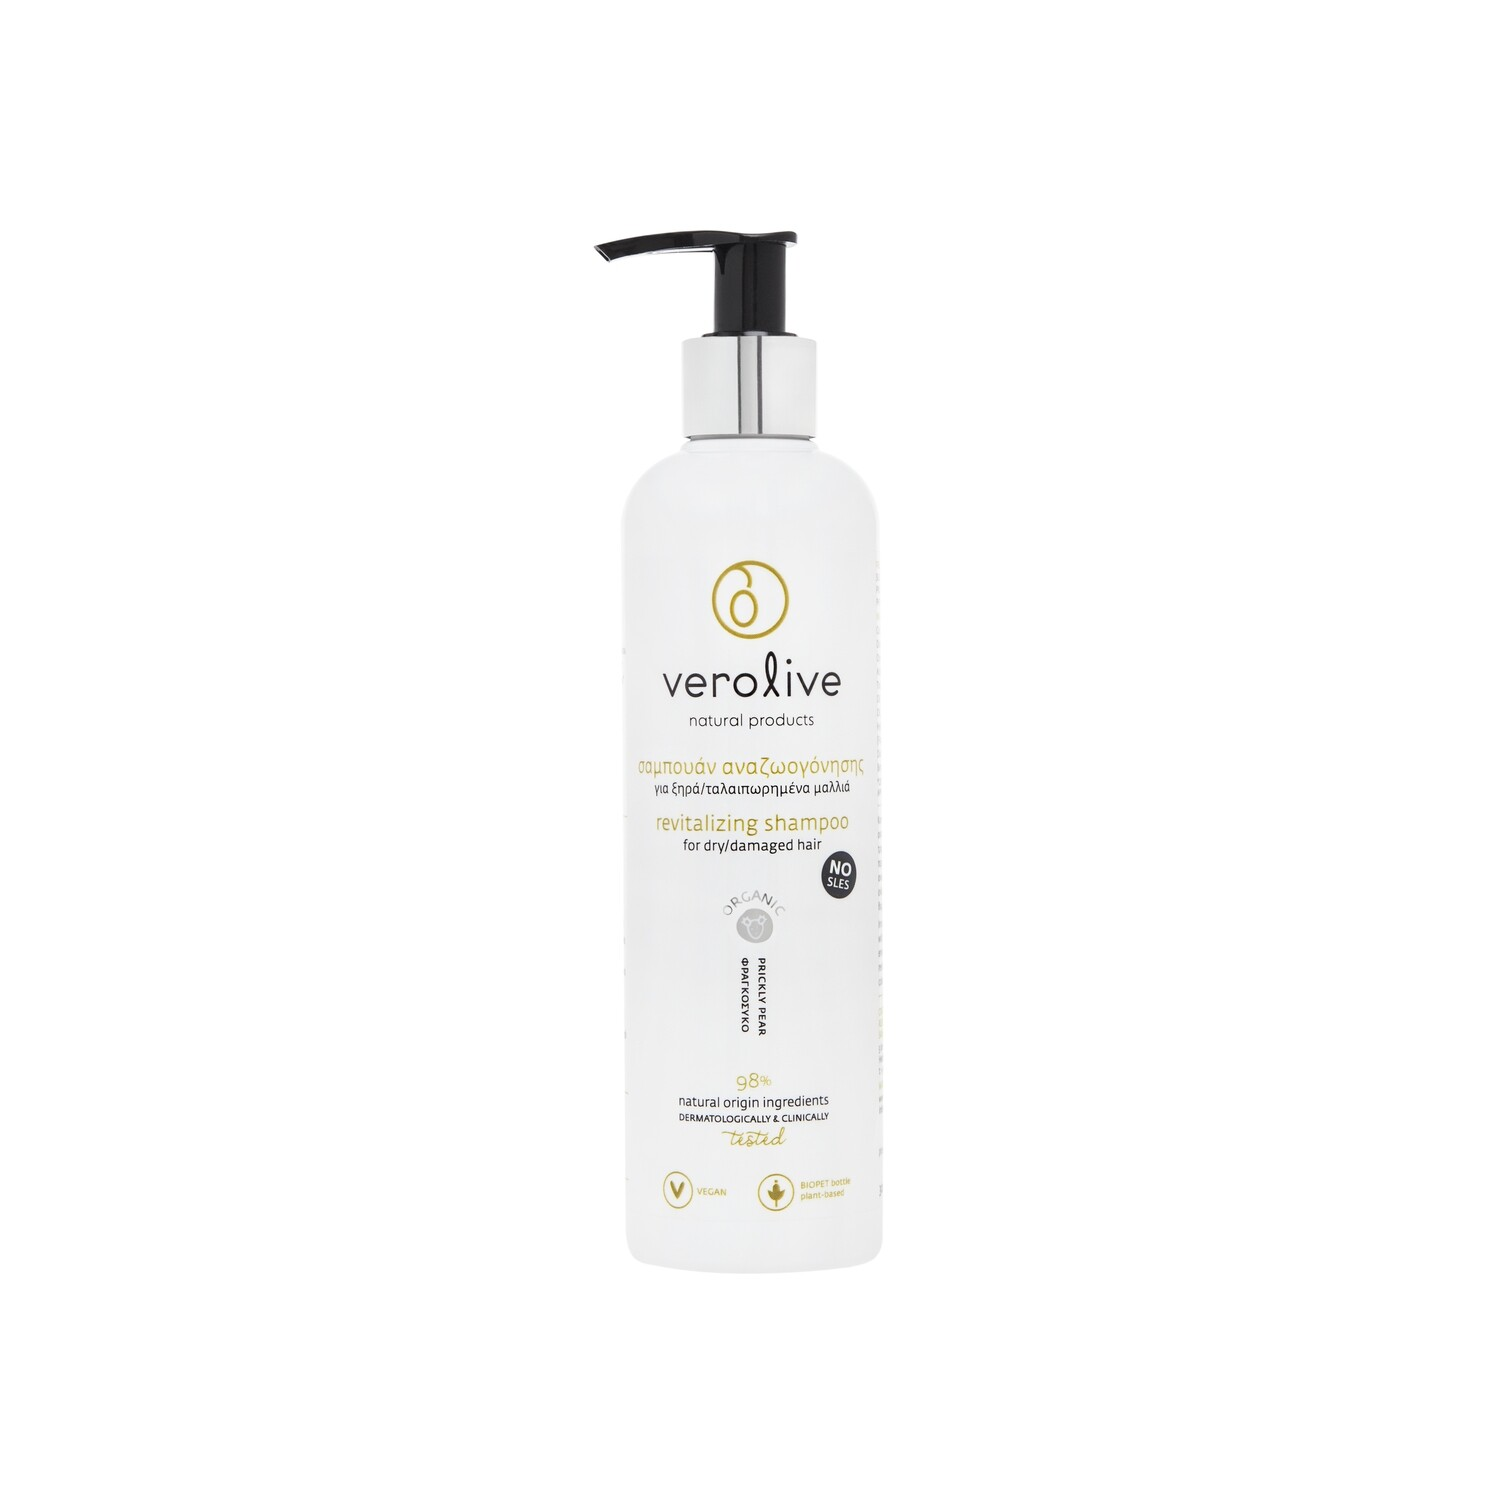 Innovative Sulfate-FREE Revitalizing shampoo for dry/damaged hair